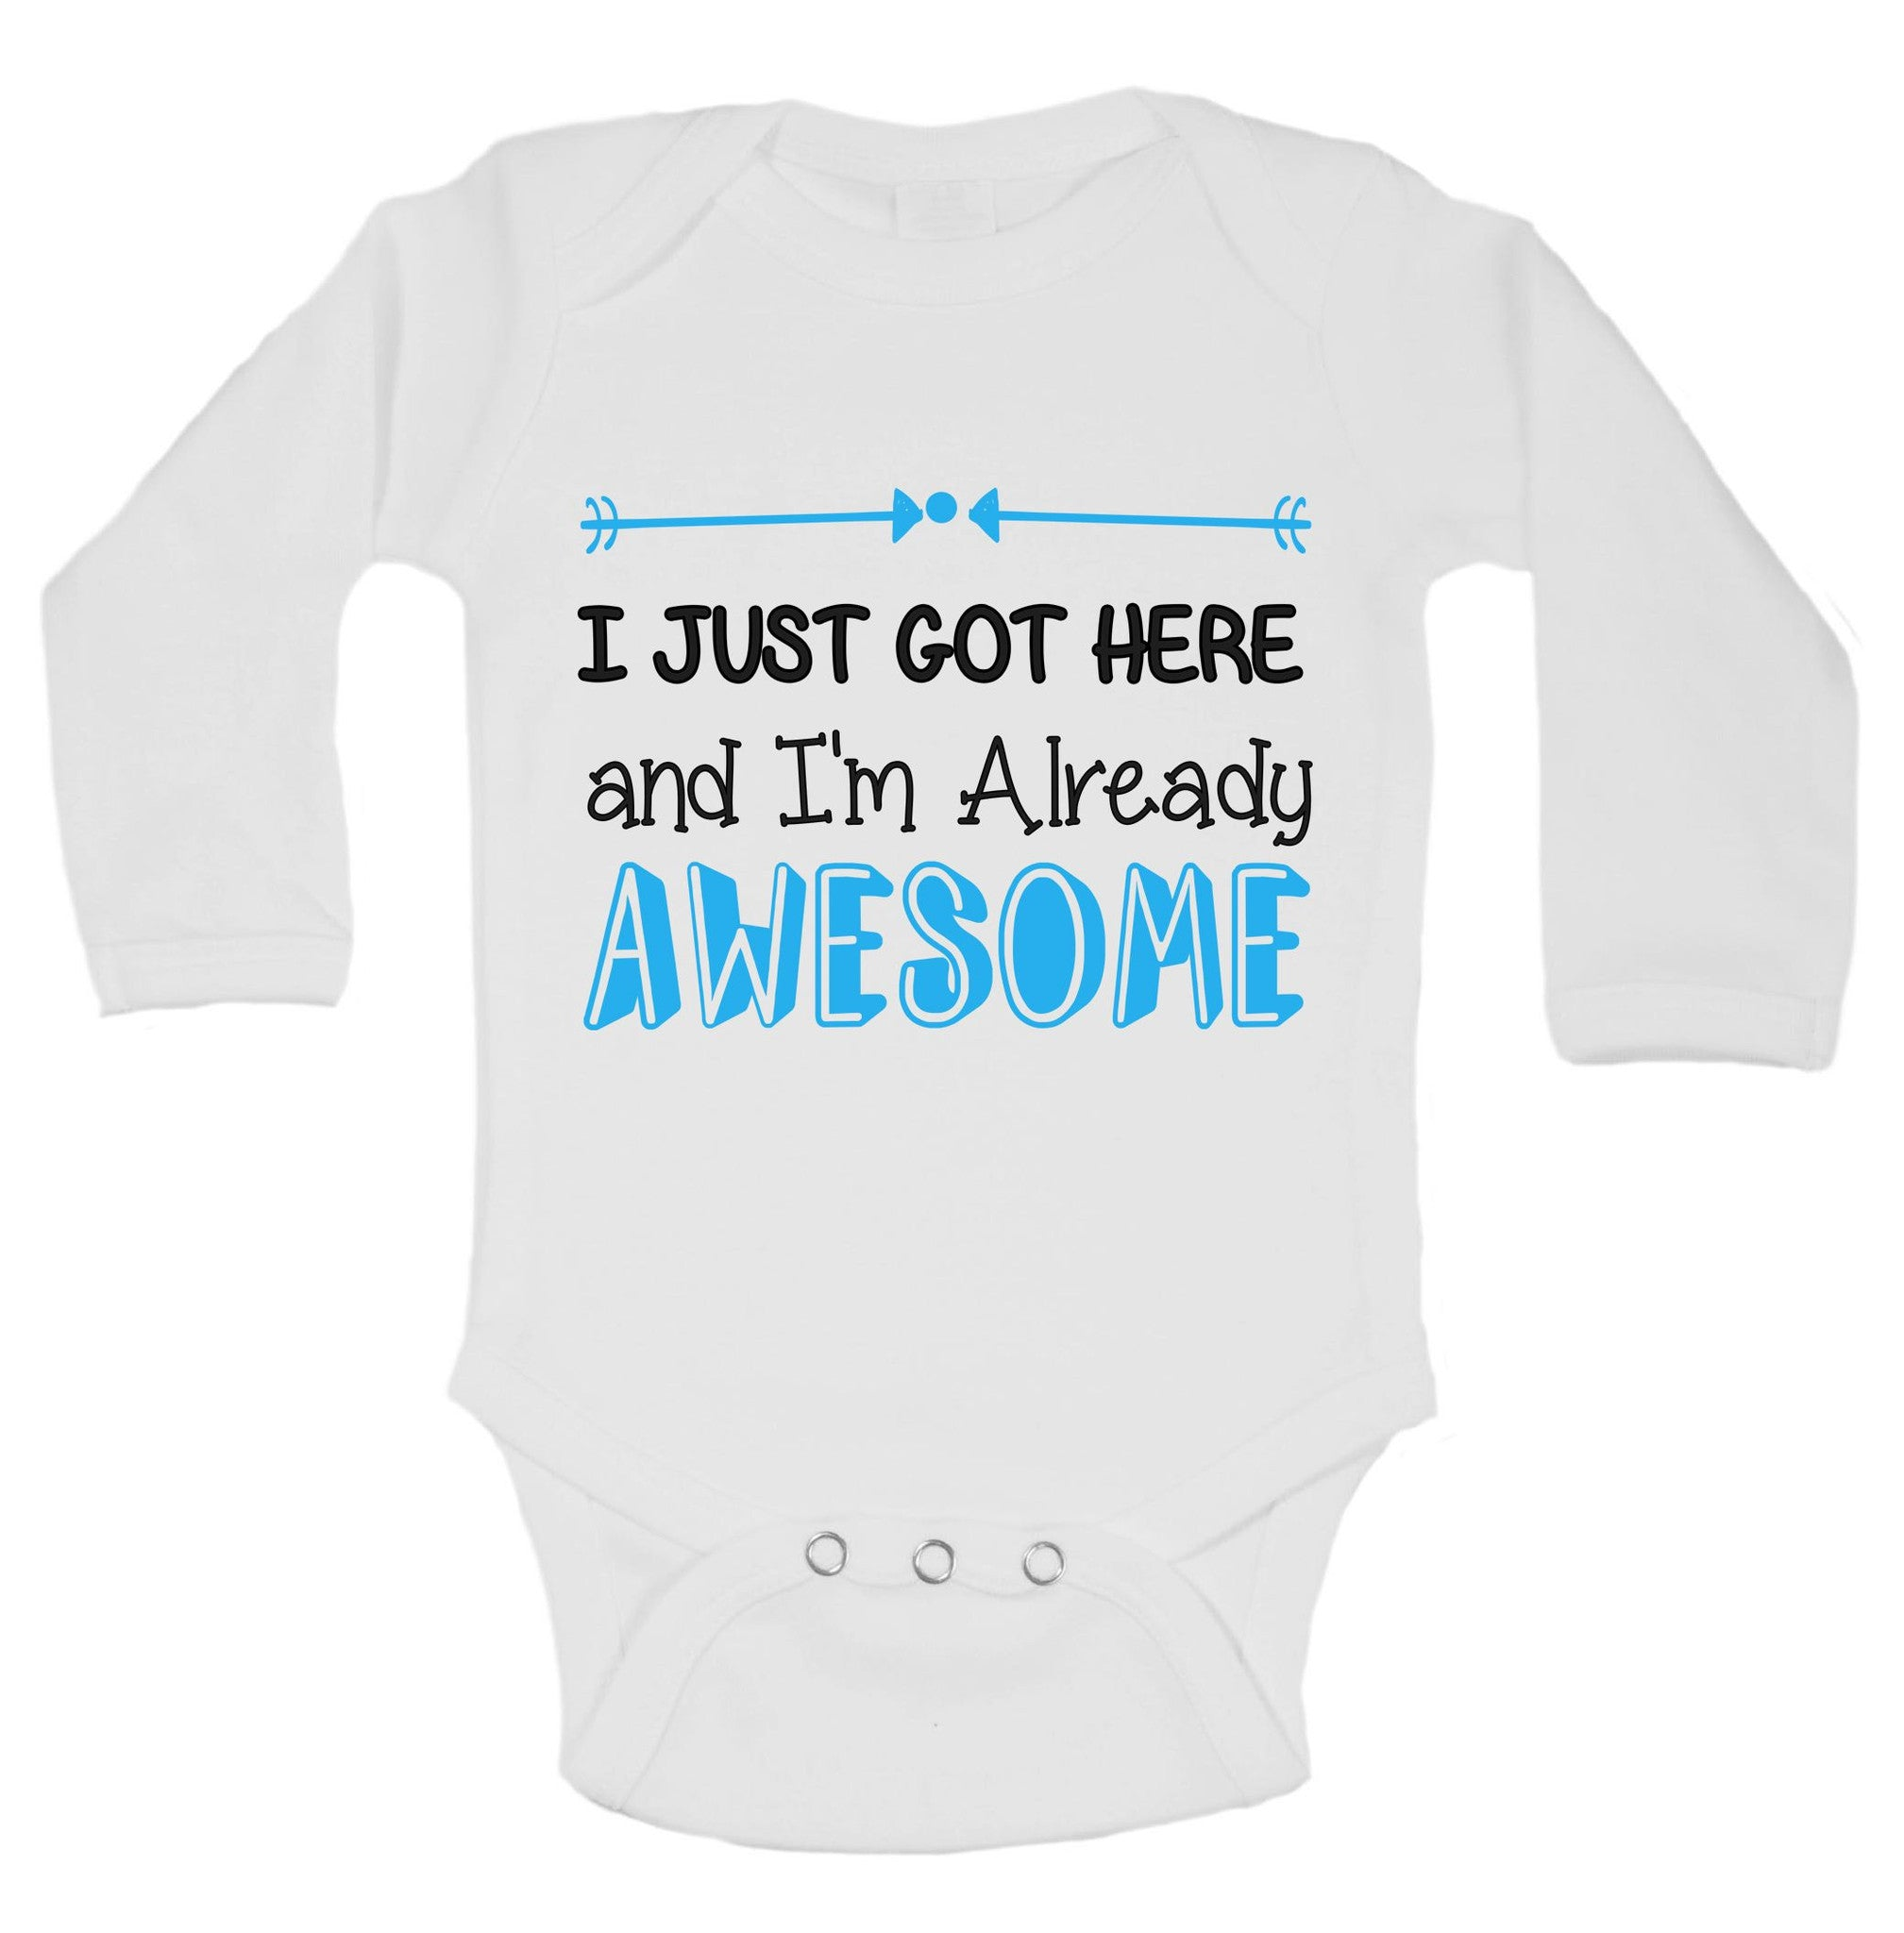 I Just Got Here And I'm Already Awesome Funny Kids Onesie - B149 - Funny Shirts Tank Tops Burnouts and Triblends  - 1